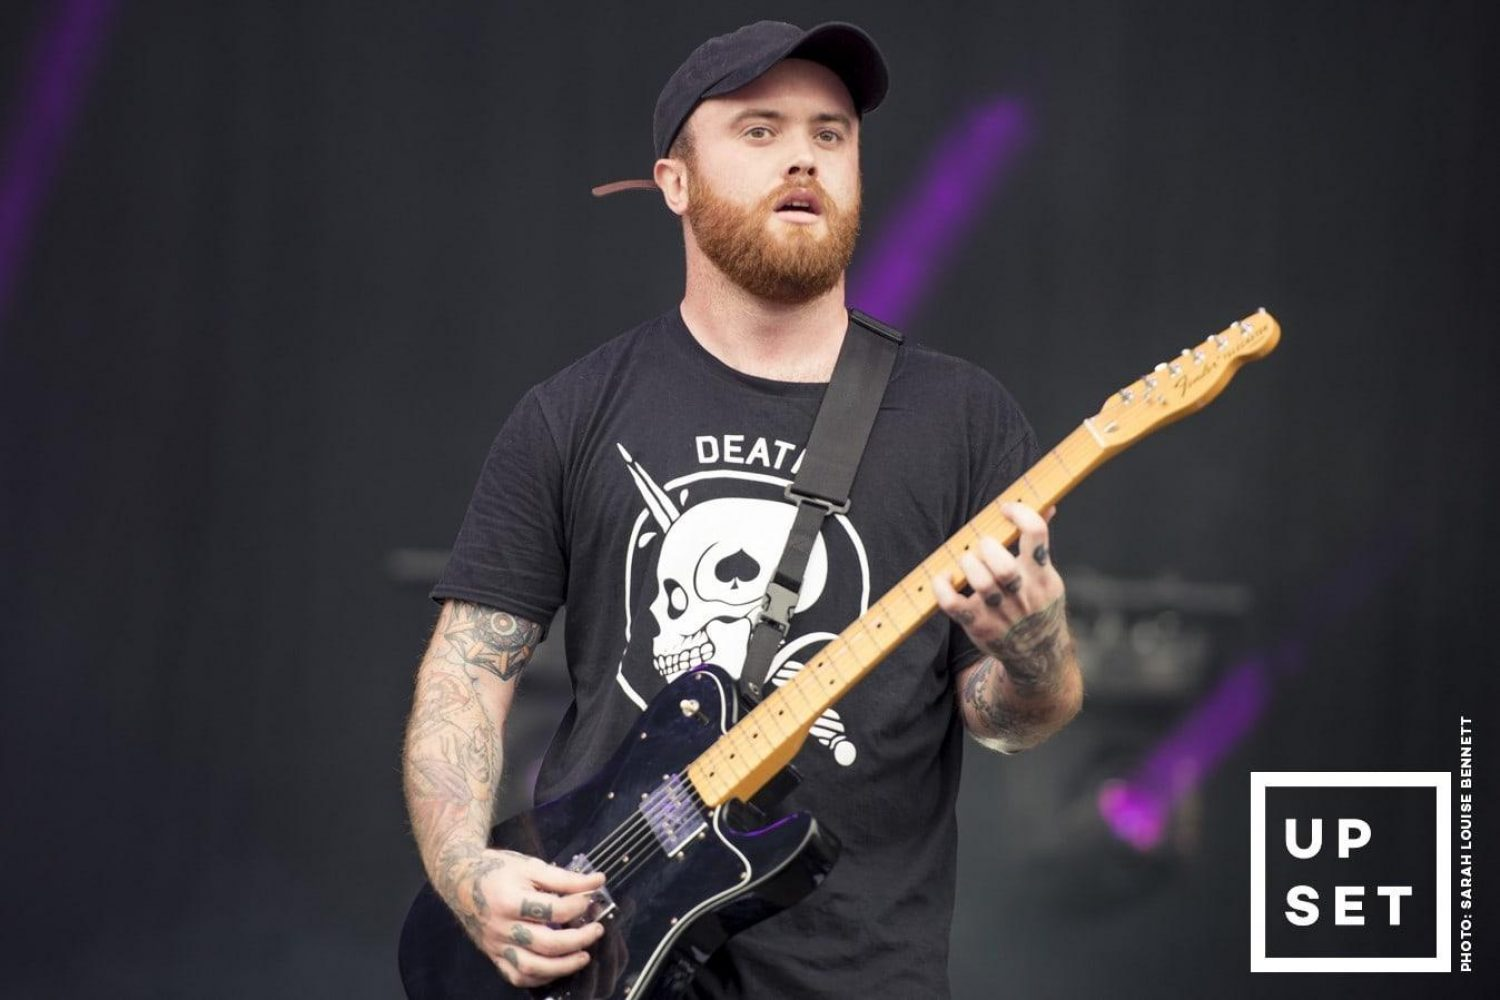 Guitarist/vocalist Taylor Lumley has left Beartooth